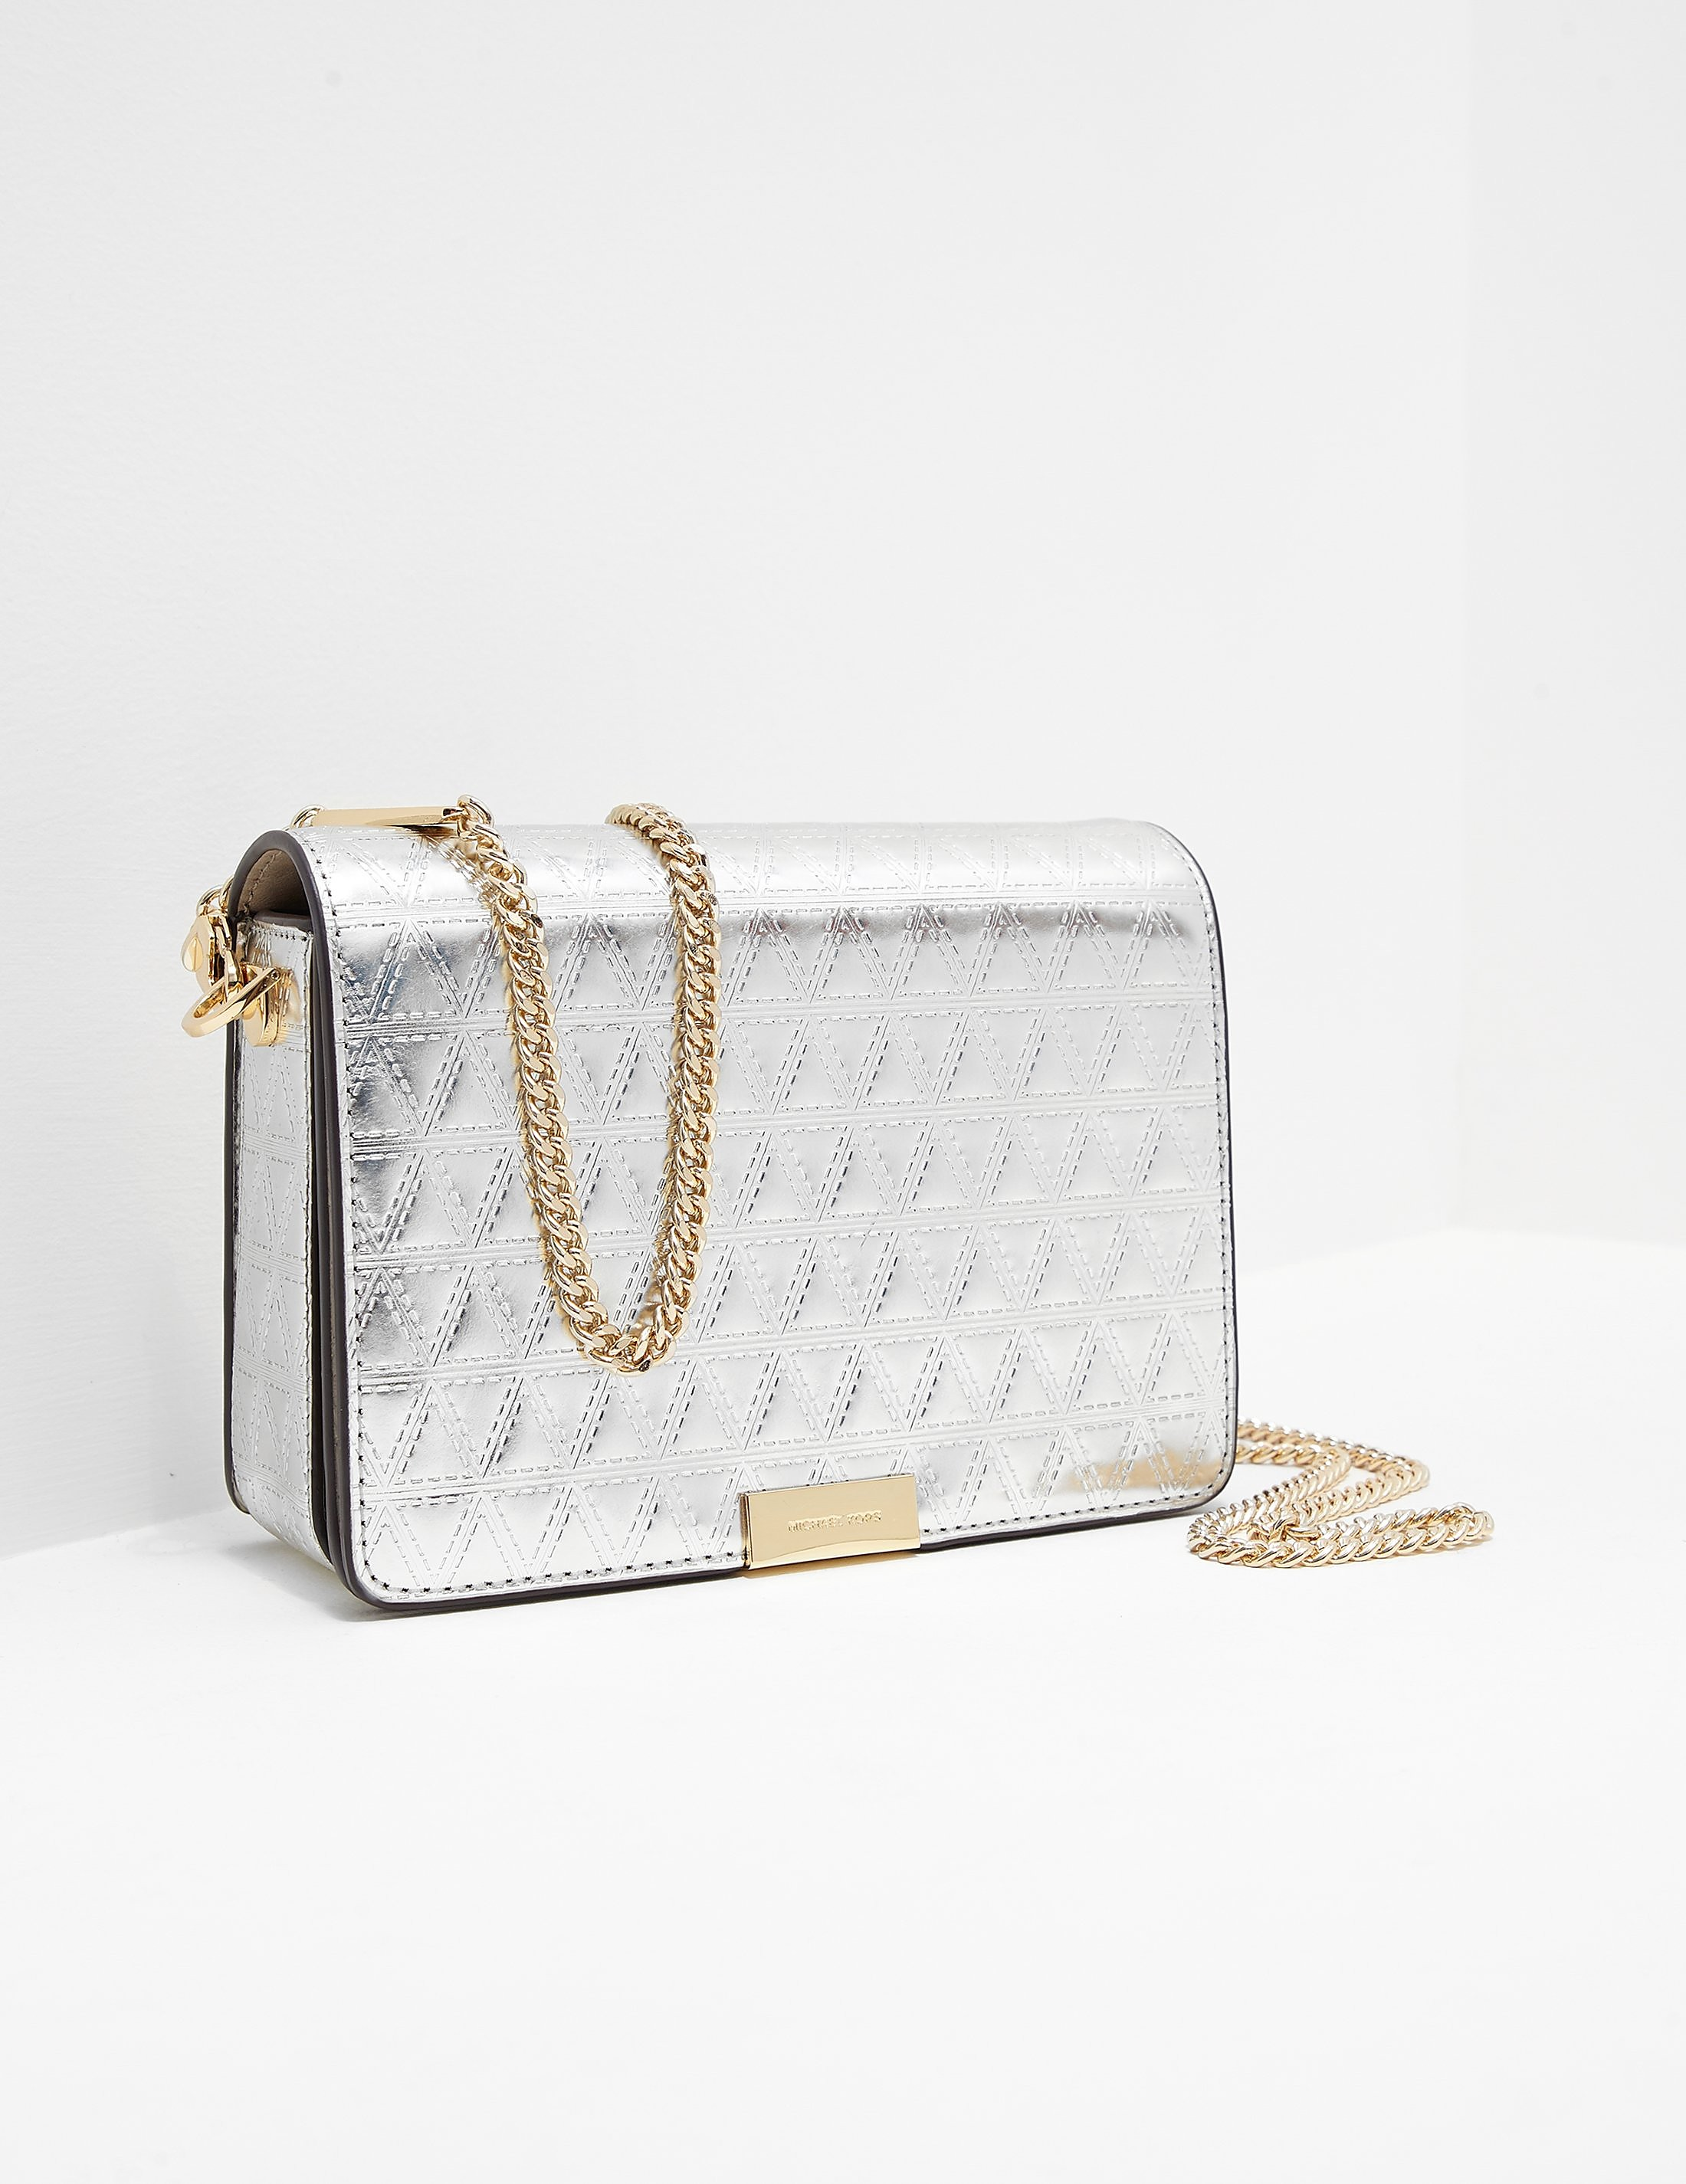 Michael Kors Jade Quilted Clutch Bag